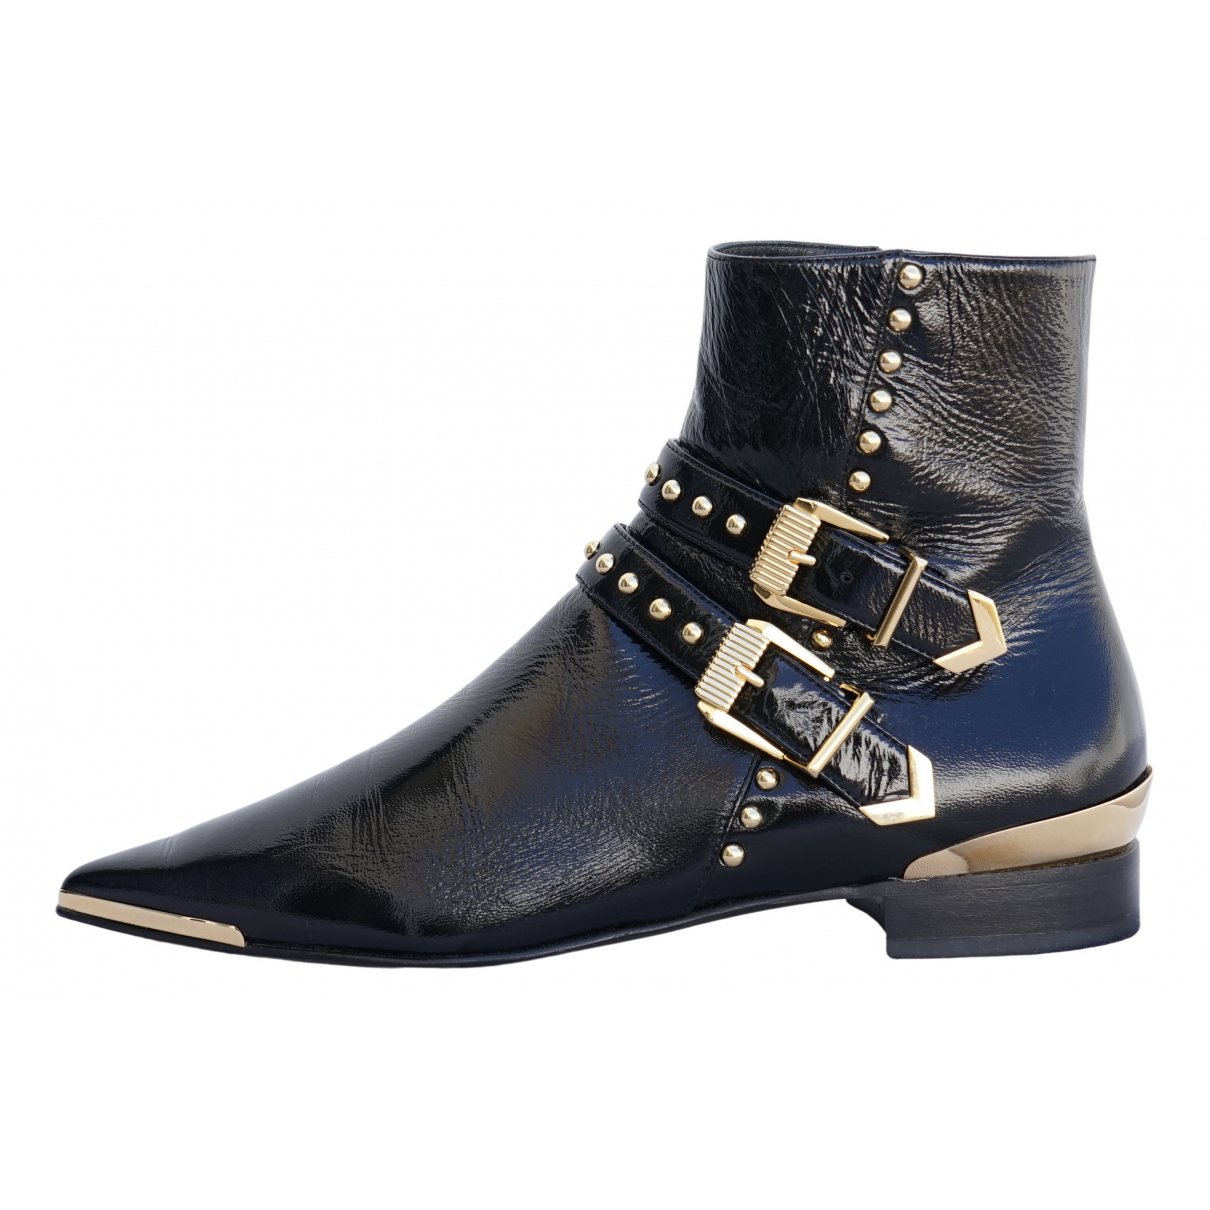 Versace \N Black Patent leather Ankle boots for Women 37.5 EU